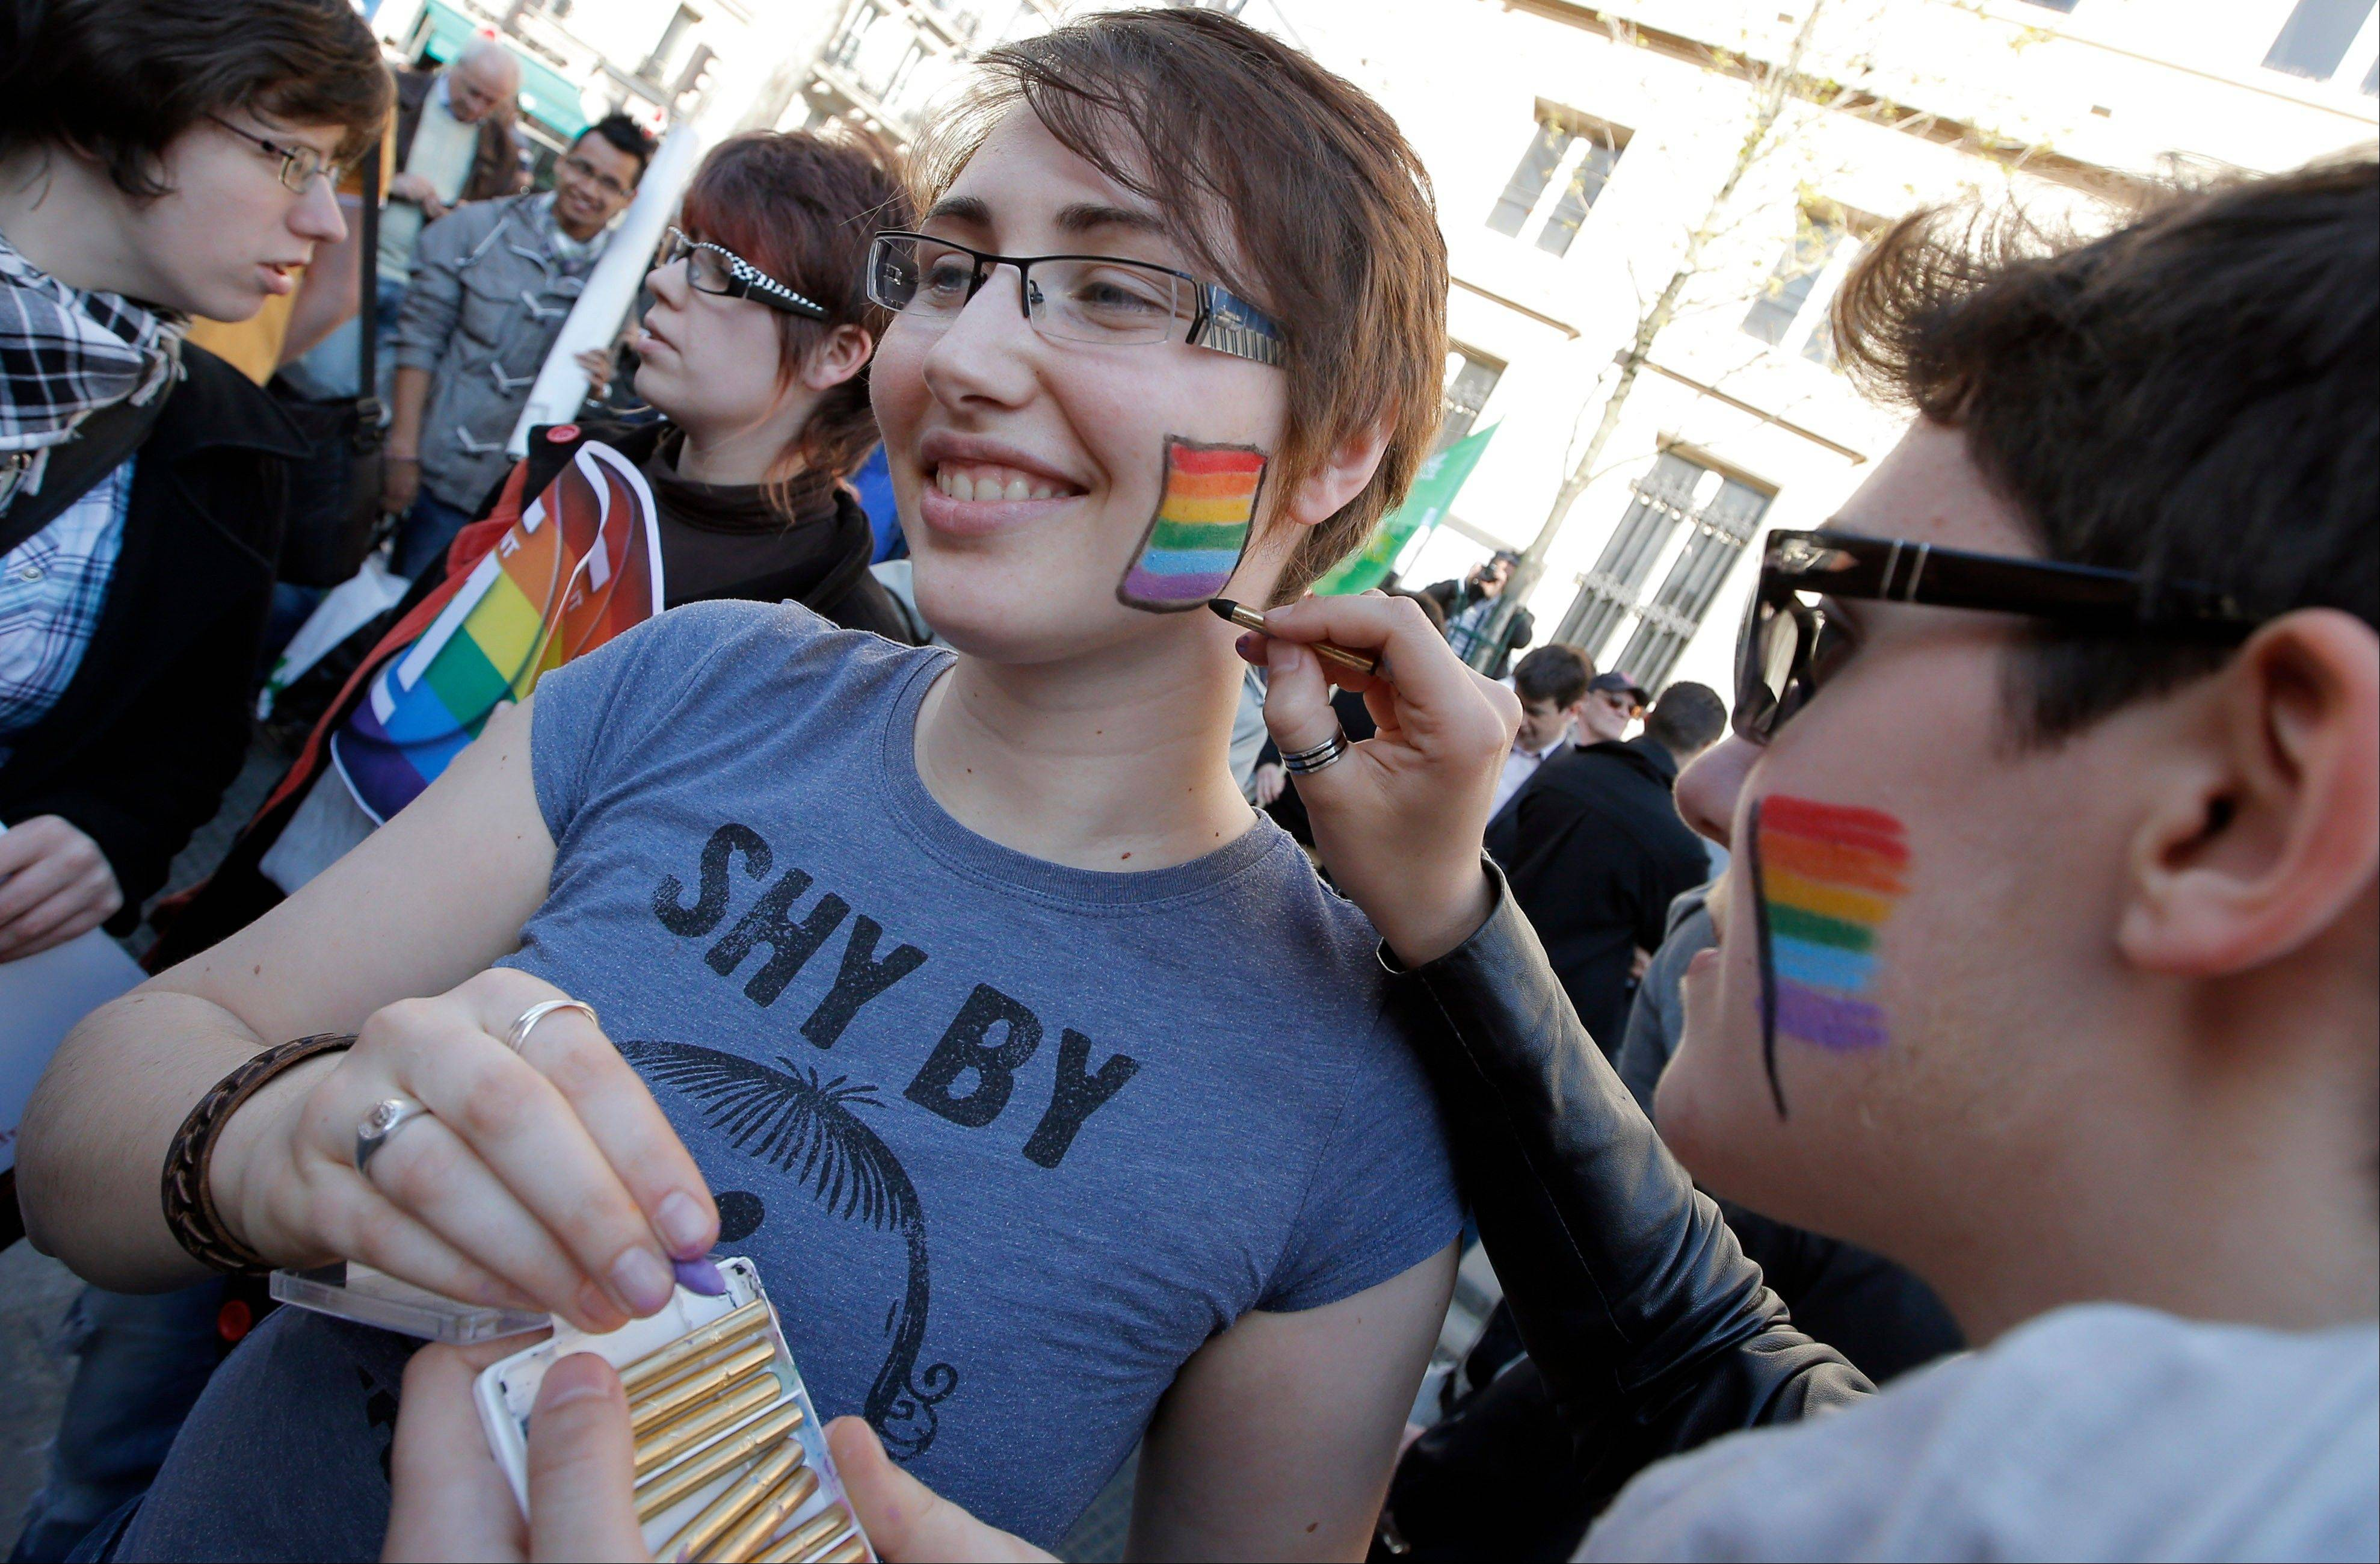 Pro gay marriage activists paint rainbow colors on their cheeks Tuesday after French lawmakers legalized same-sex marriage.